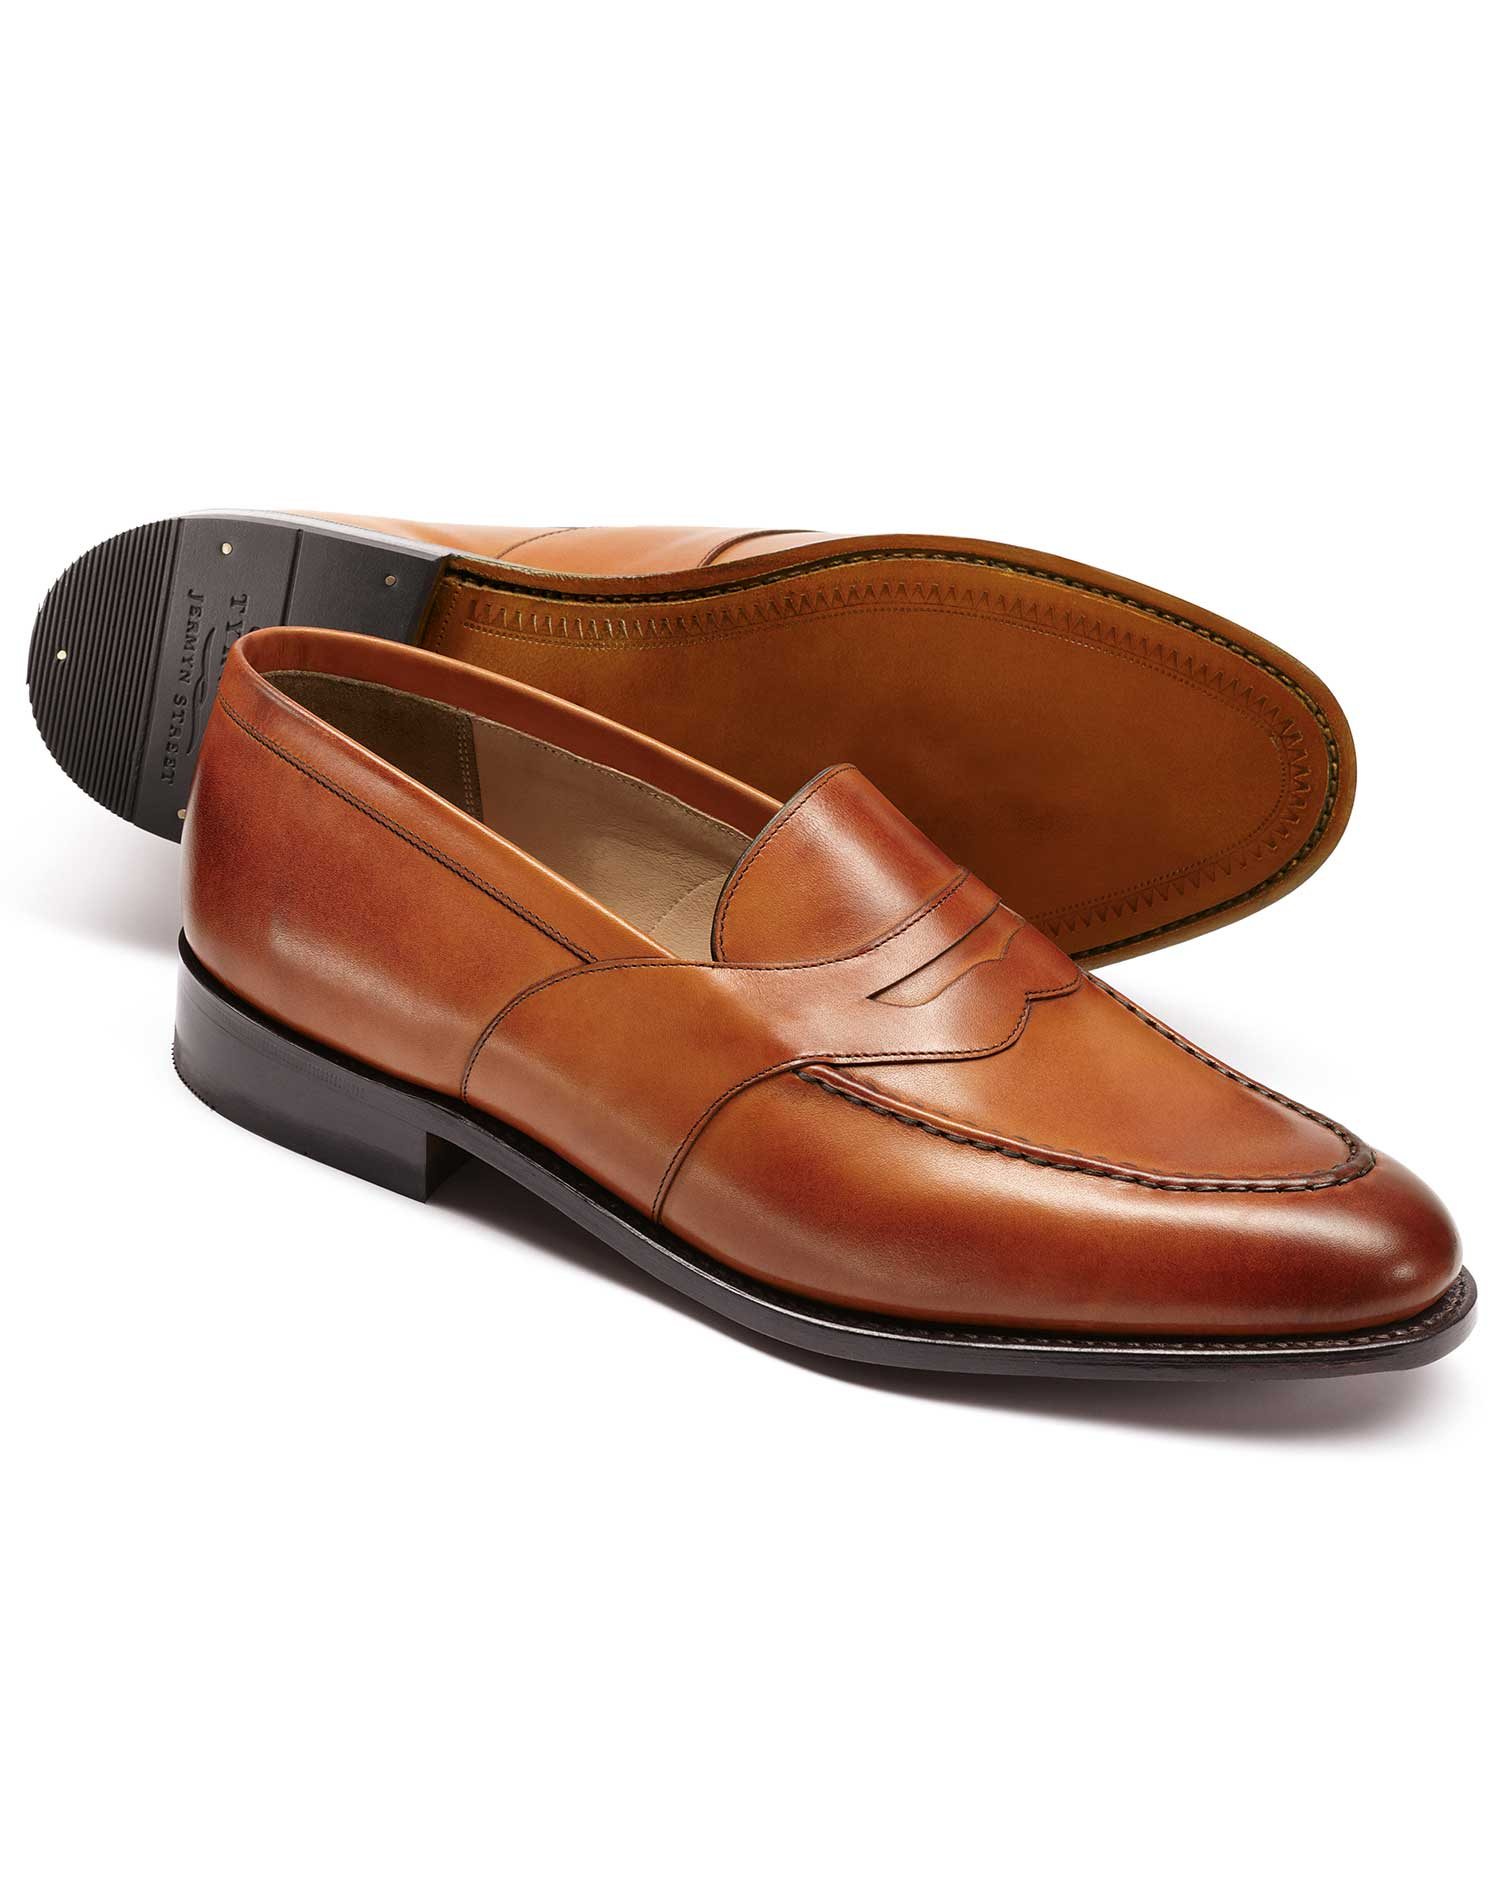 Tan Allet Loafers Size 11 R by Charles Tyrwhitt